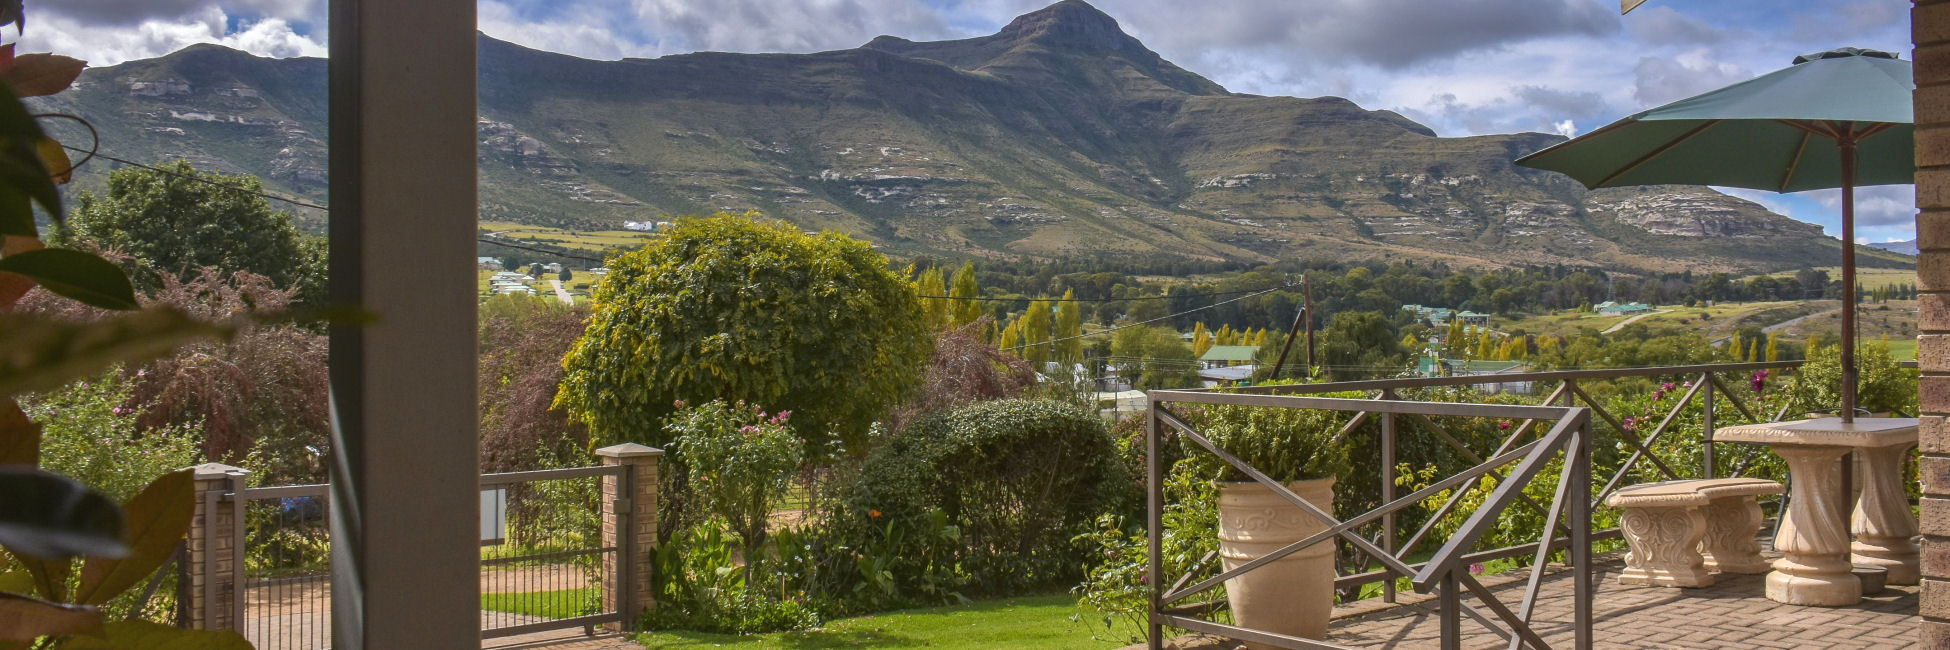 Clarens Retreat - In the idyllic town of Clarens